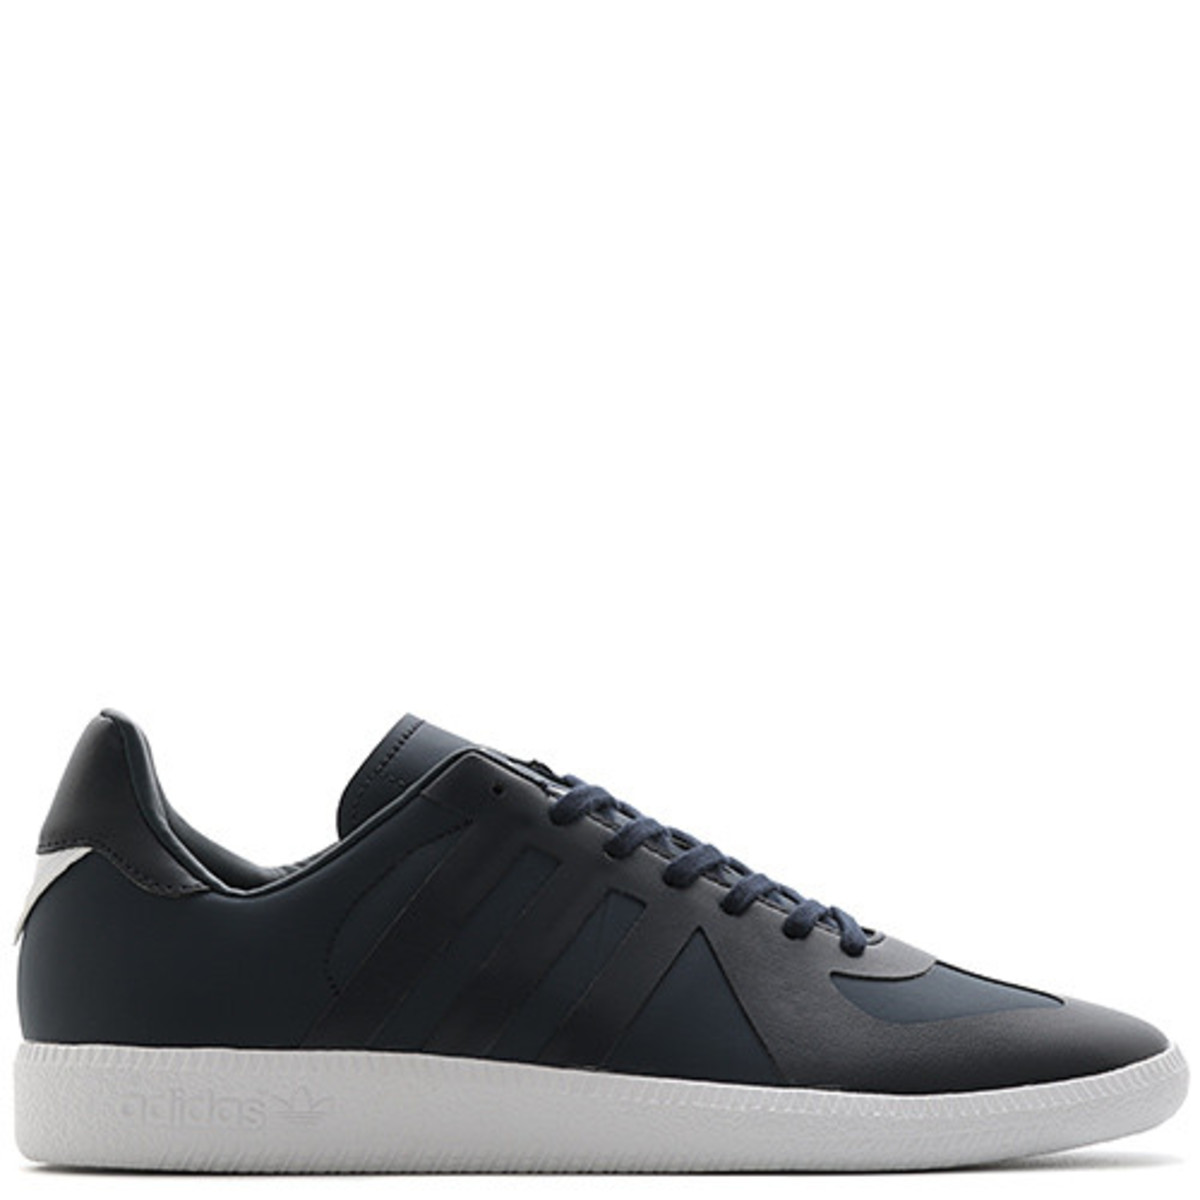 0cc4ad764727 ADIDAS ORIGINALS BY WHITE MOUNTAINEERING BW TRAINER - NIGHT NAVY ...